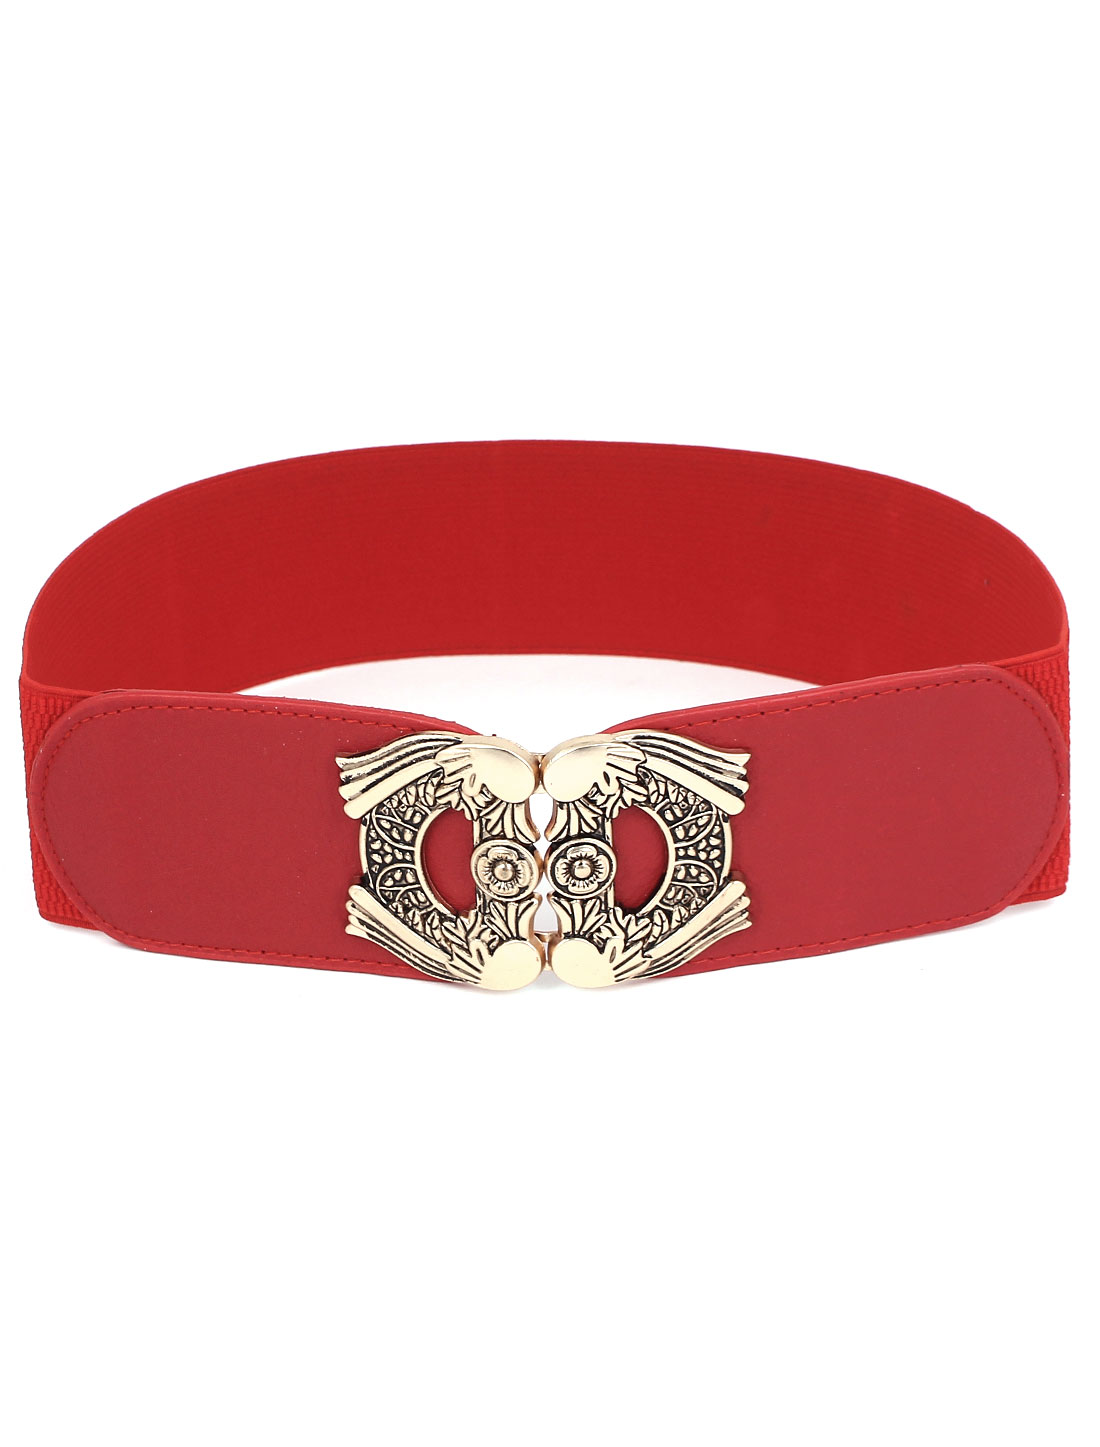 Women Metal Interlocked Buckle Faux Leather Elastic Waist Cinch Belt Band Waistbelt Red